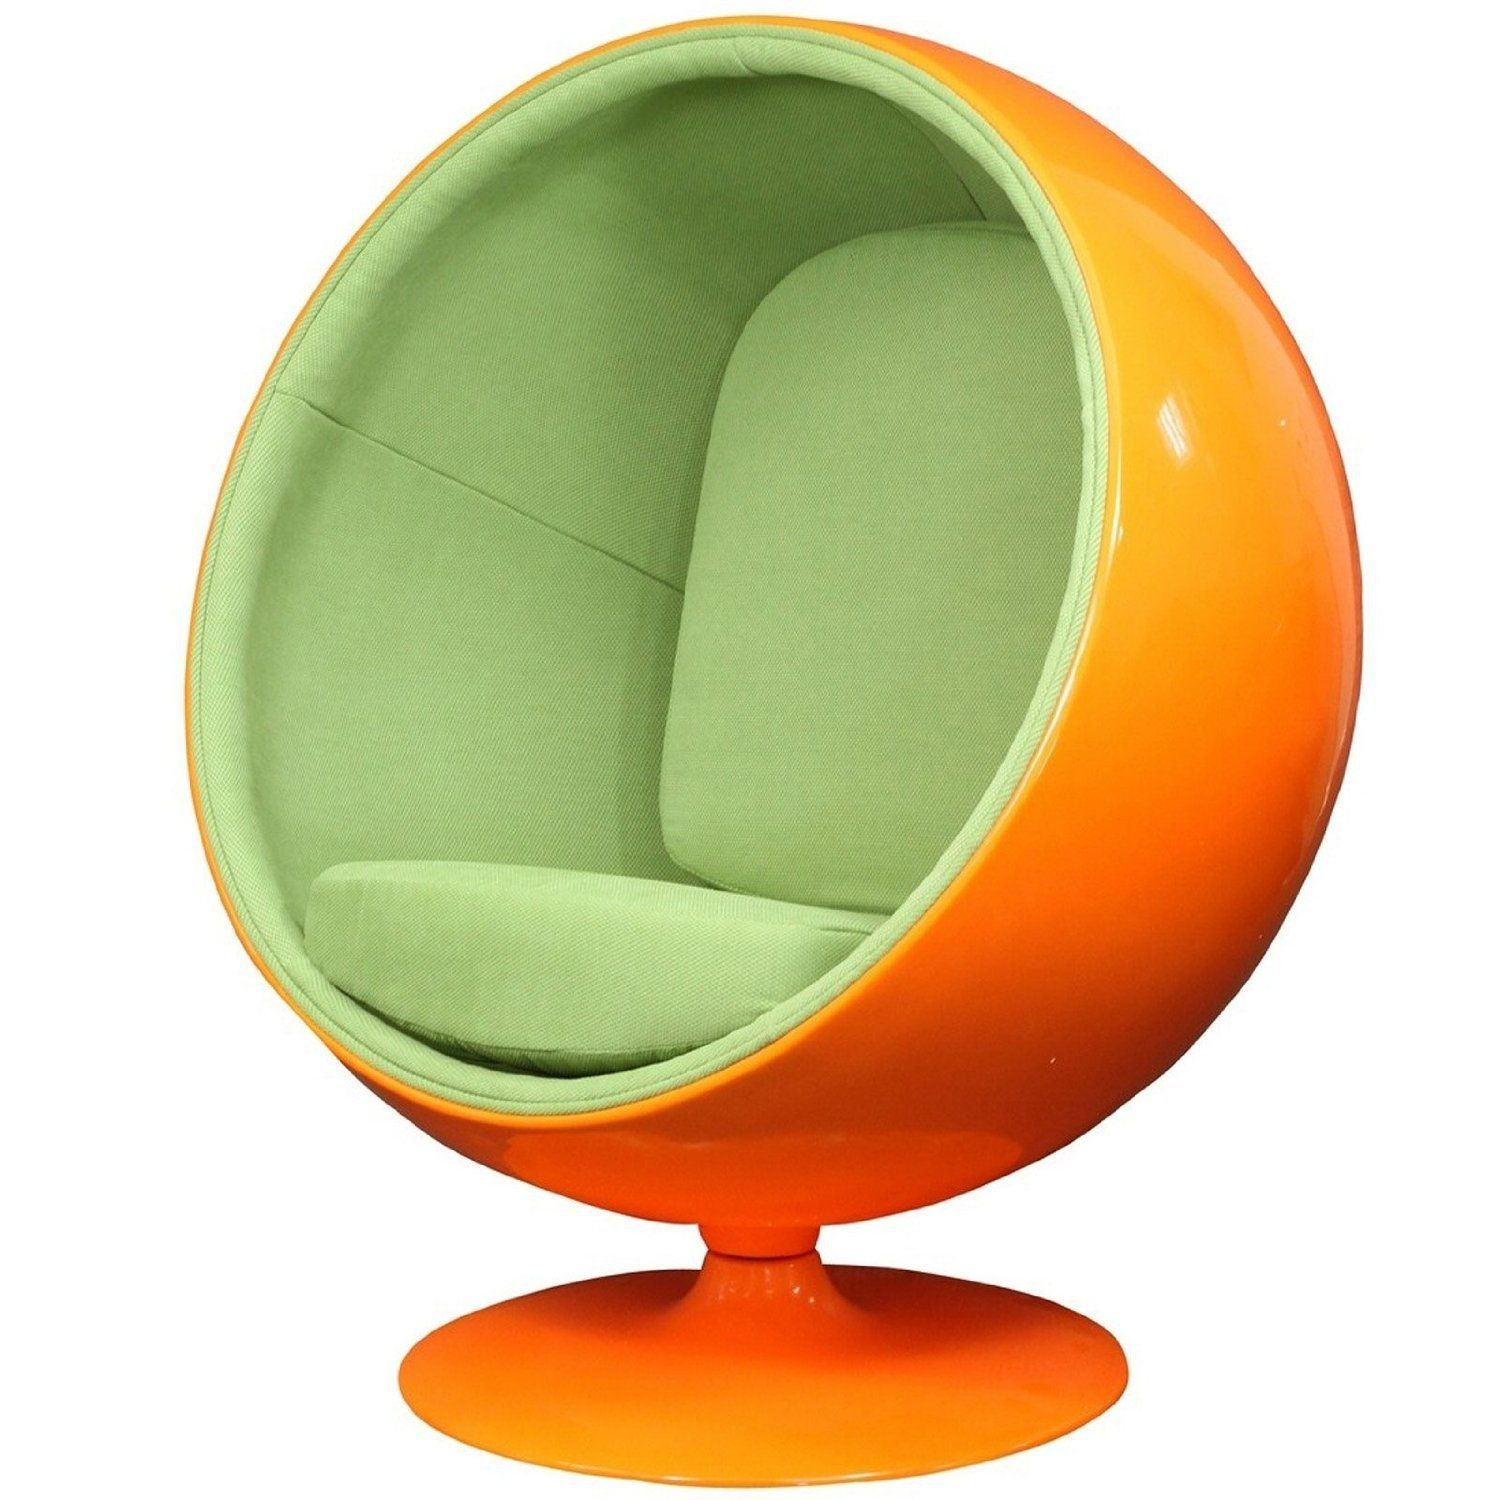 Look out Jetsons! Lexington Modern Eero Aarnio Style Ball Chair